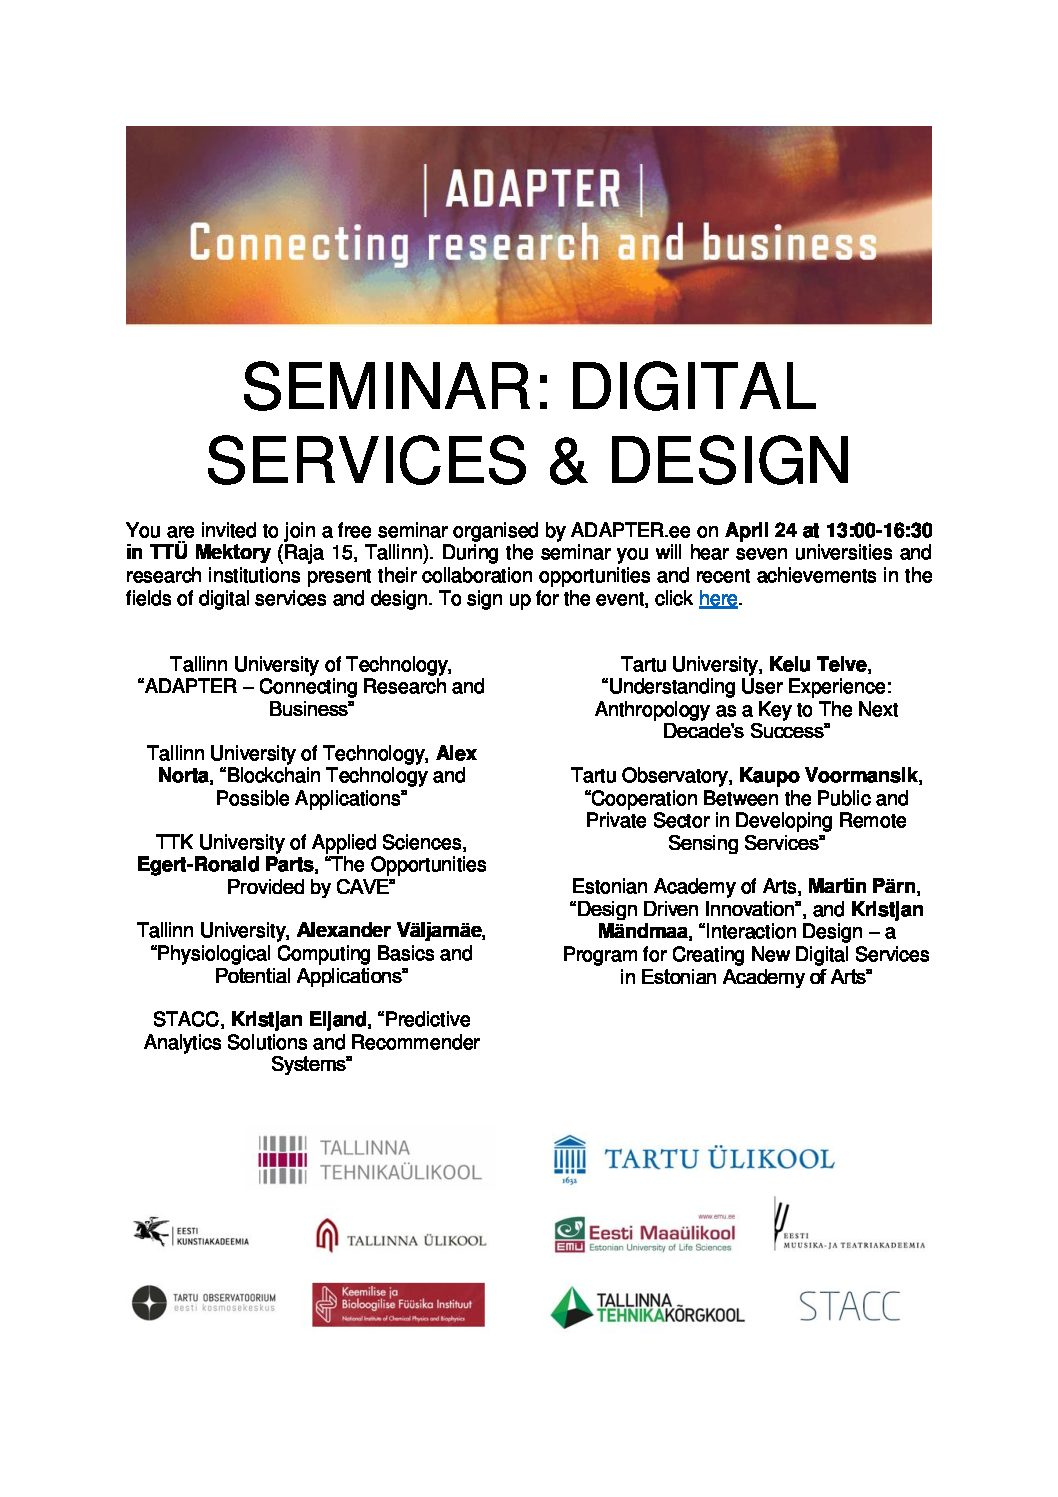 Invitation_ADAPTER_Digital Services and Design_24.04.2017